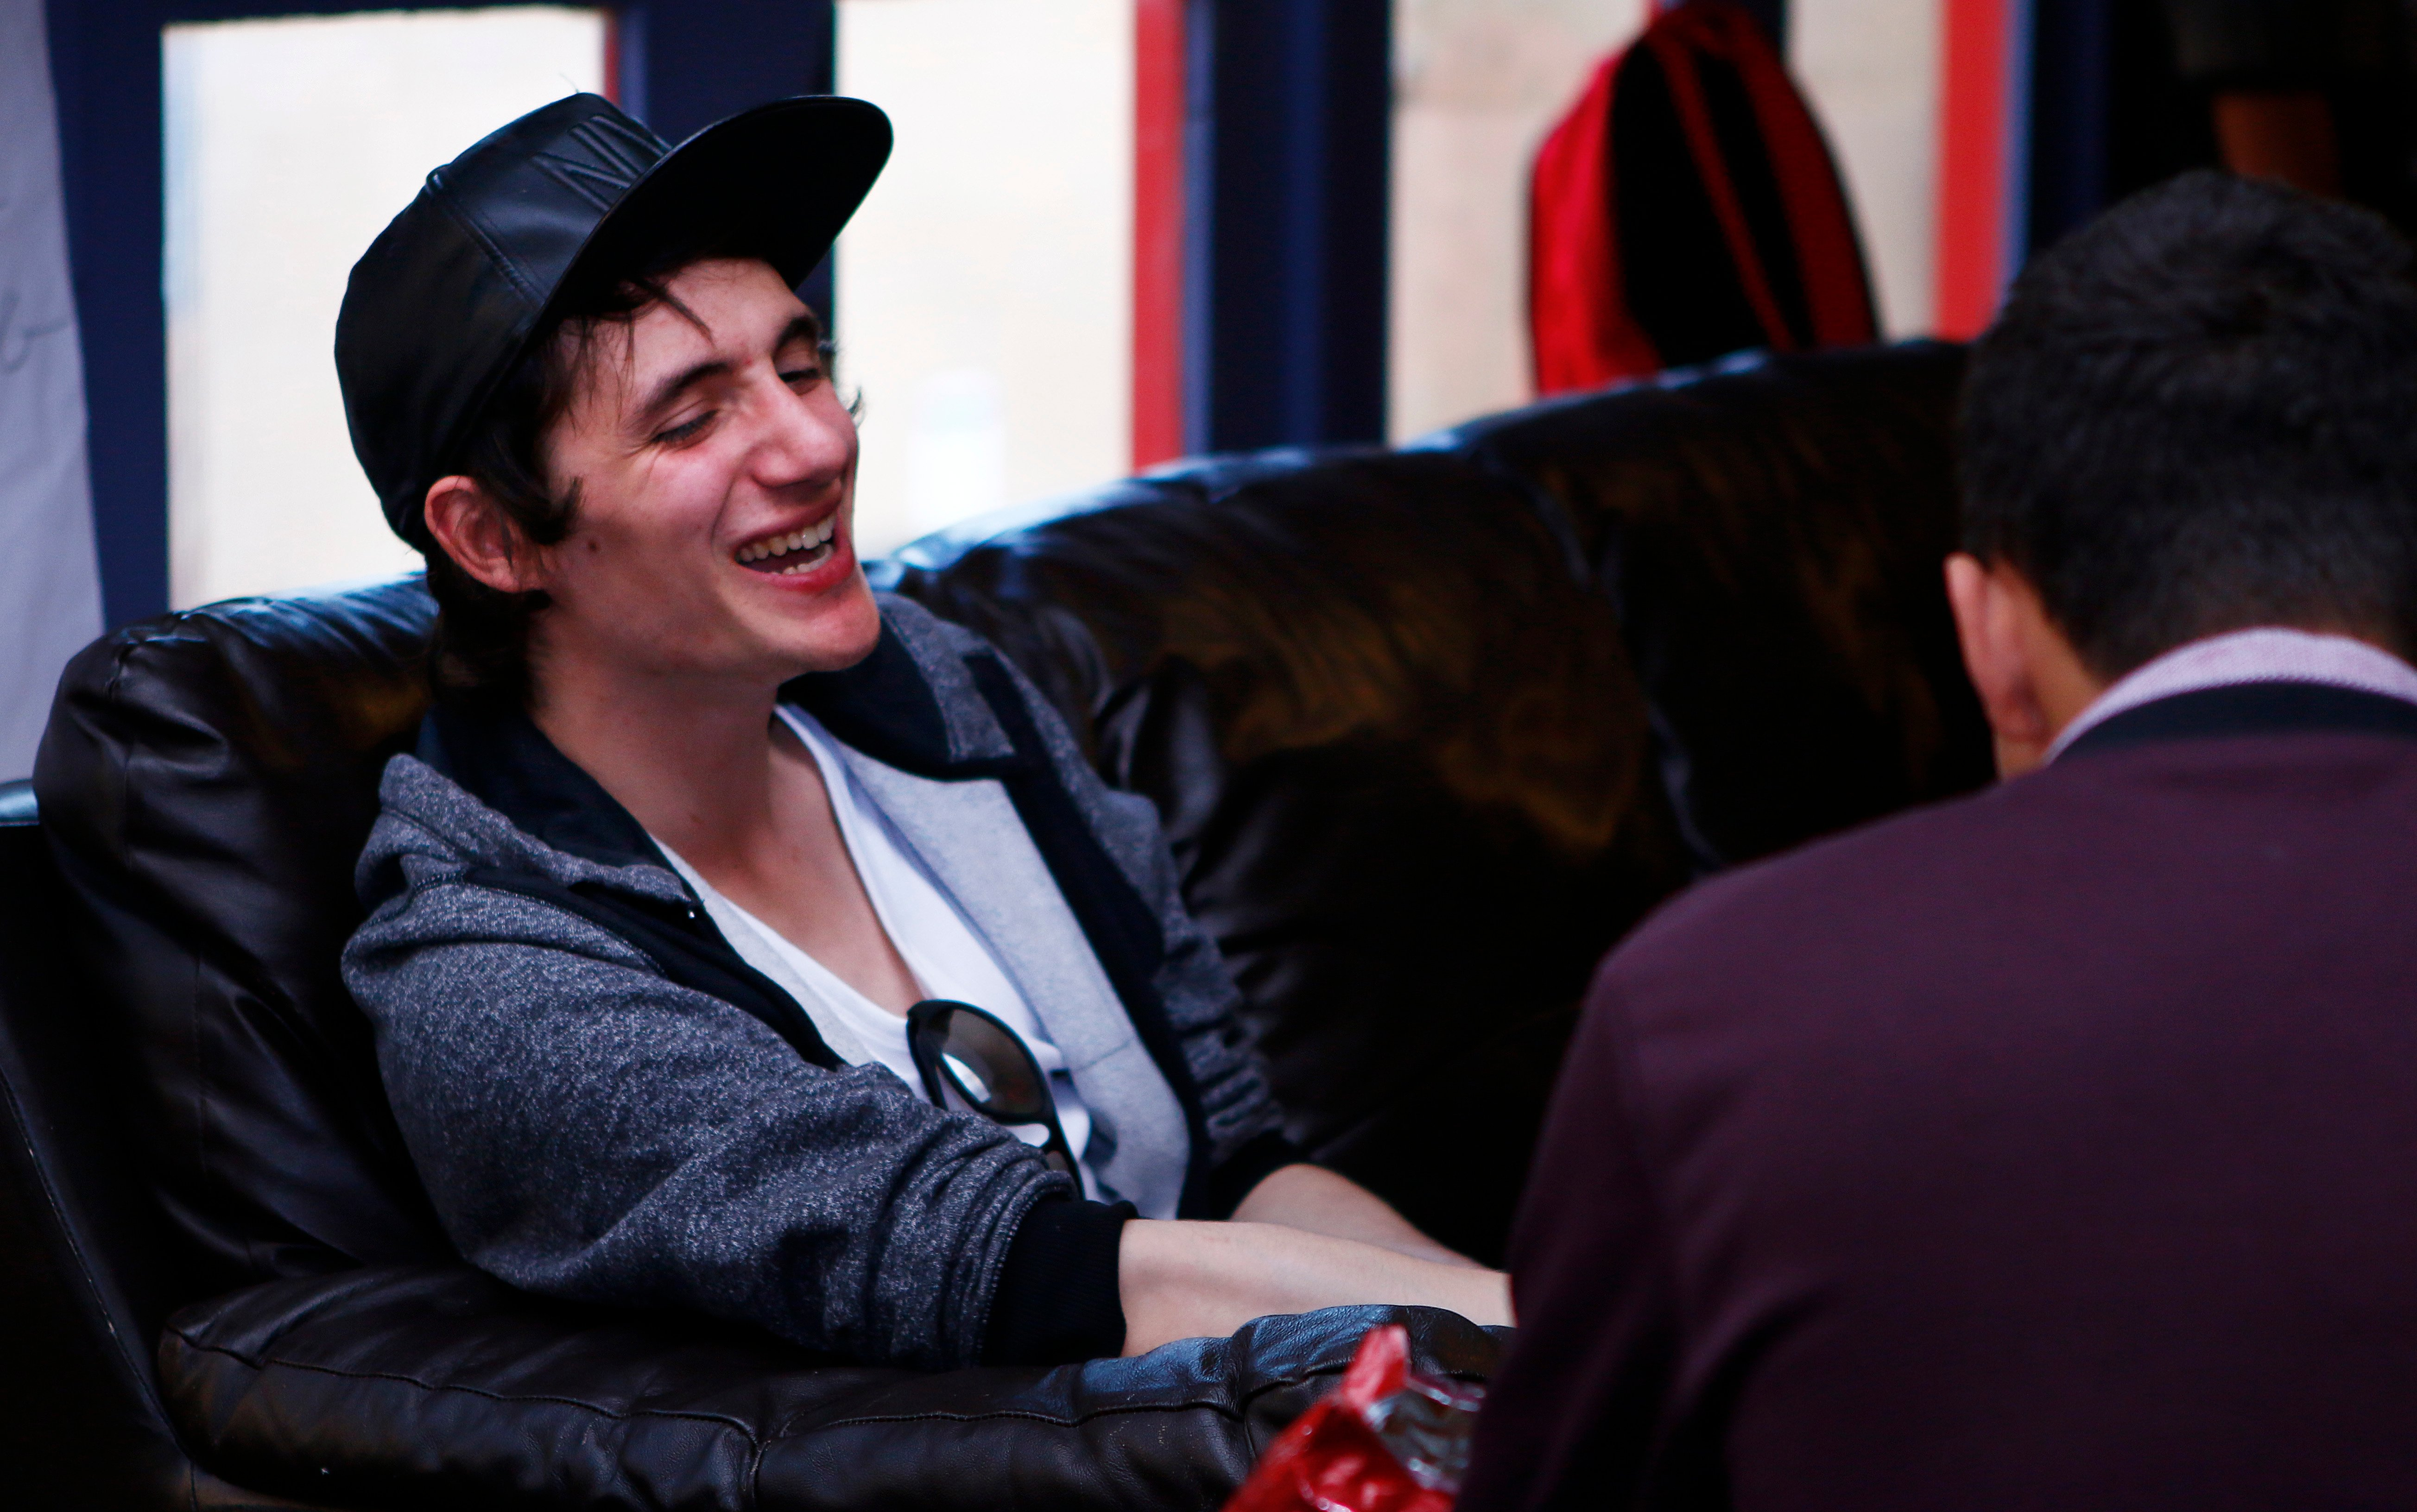 A happy young man sitting on a sofa, talking with someone facing away from the camera